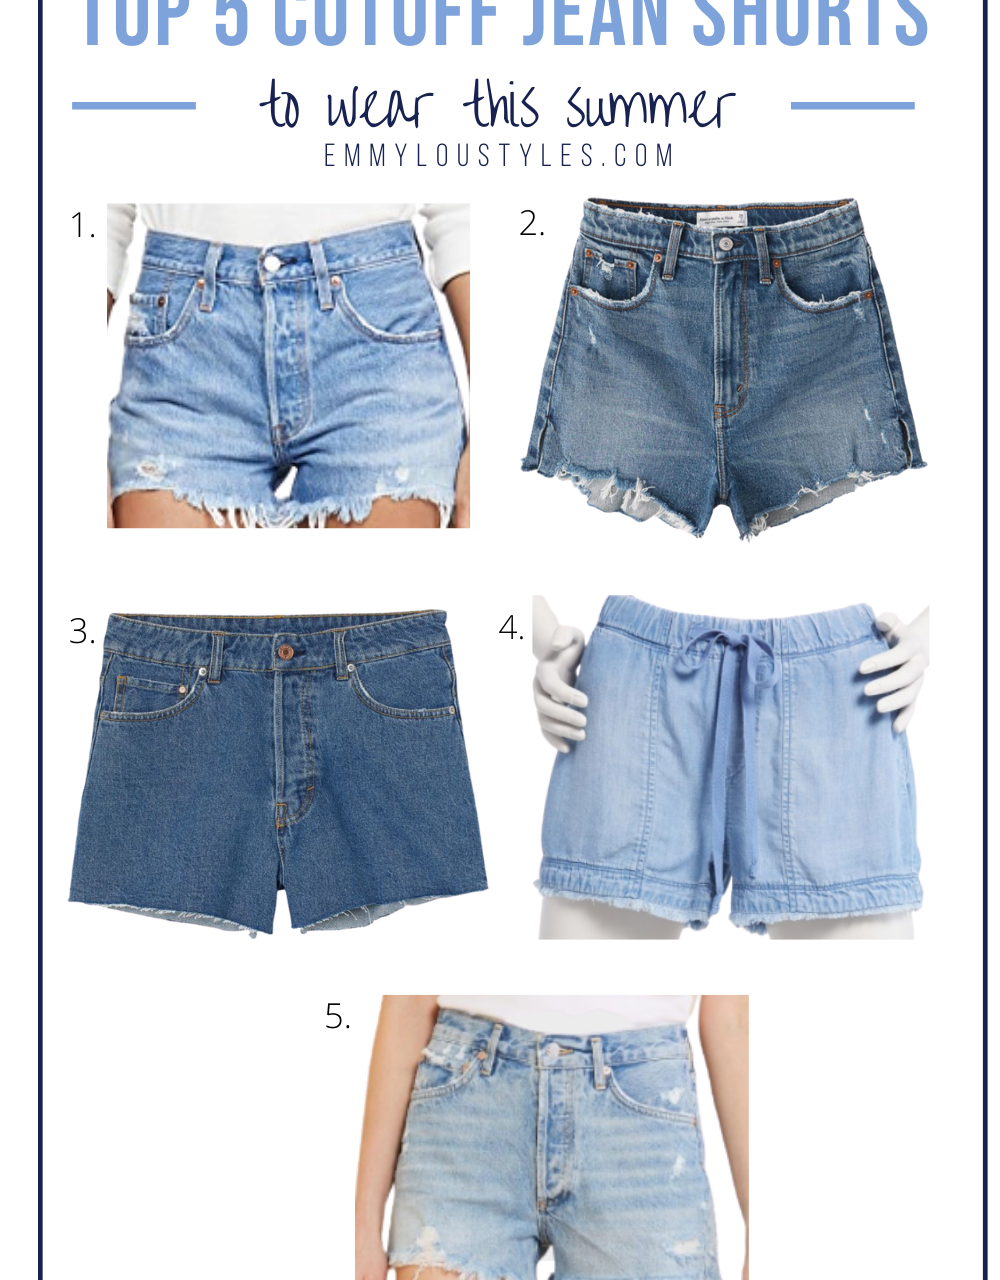 Top 5 CutOff Jeans Shorts To Wear This Summer